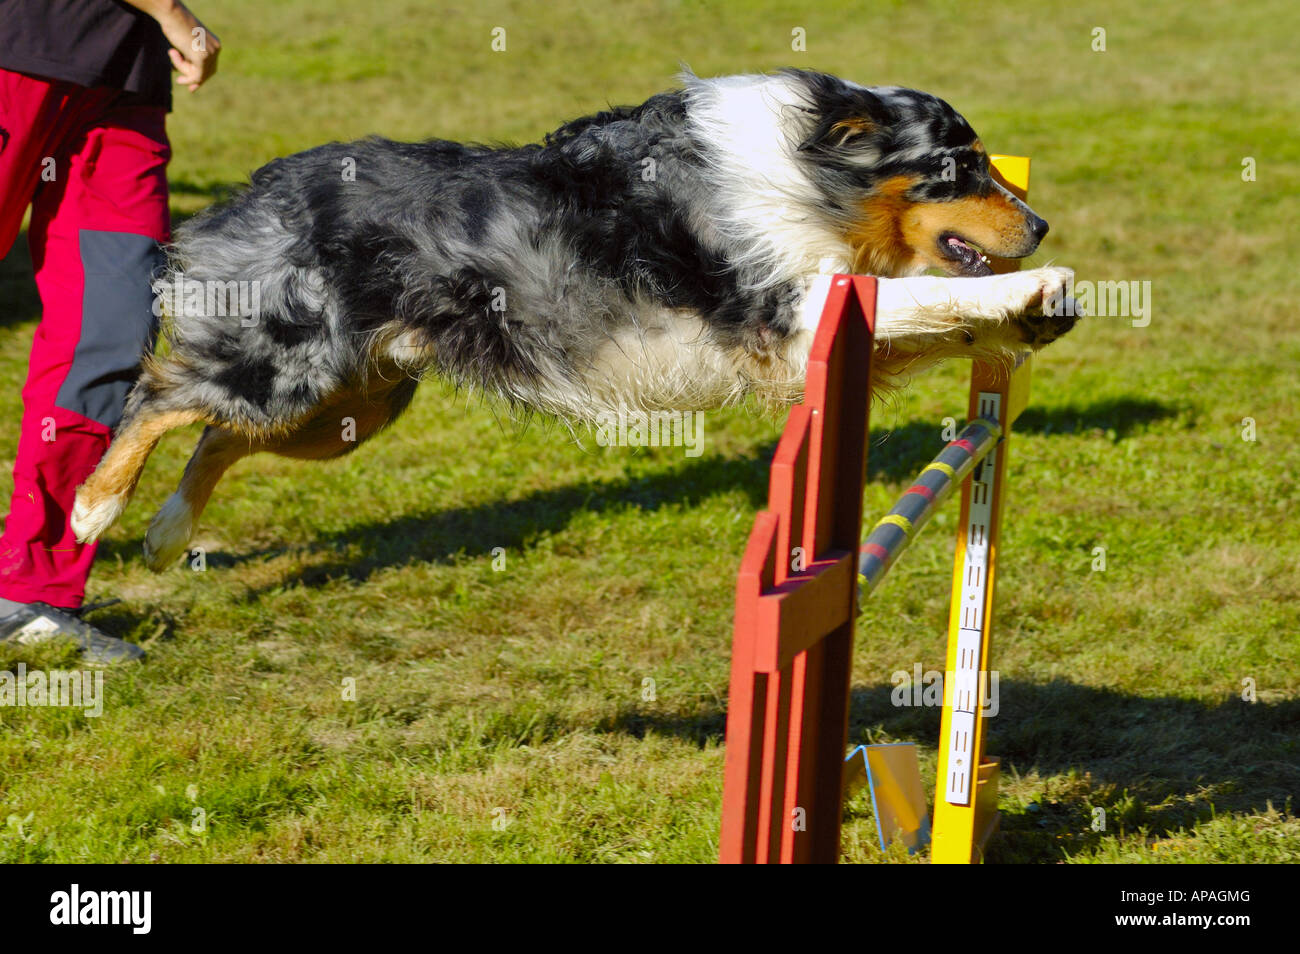 A dog competing in agility trials, jumping over an obstacle, its owner half out of the picture - Stock Image